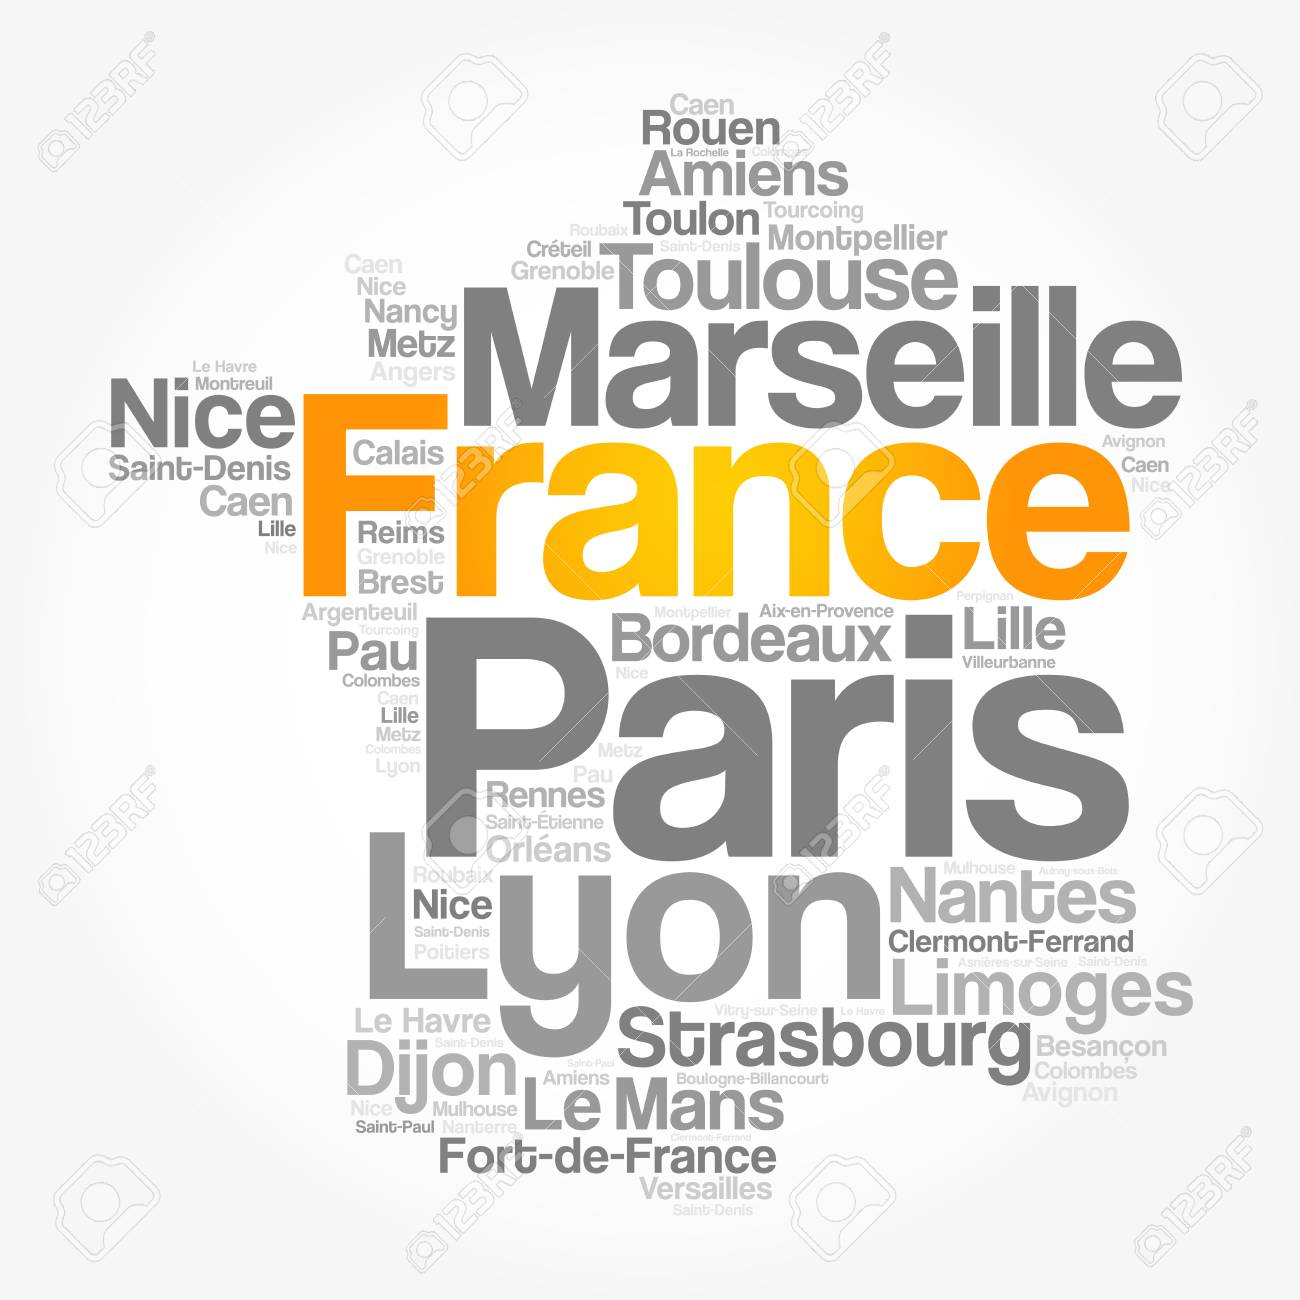 Map Of France Cities And Towns.List Of Cities And Towns In France Map Word Cloud Collage Business